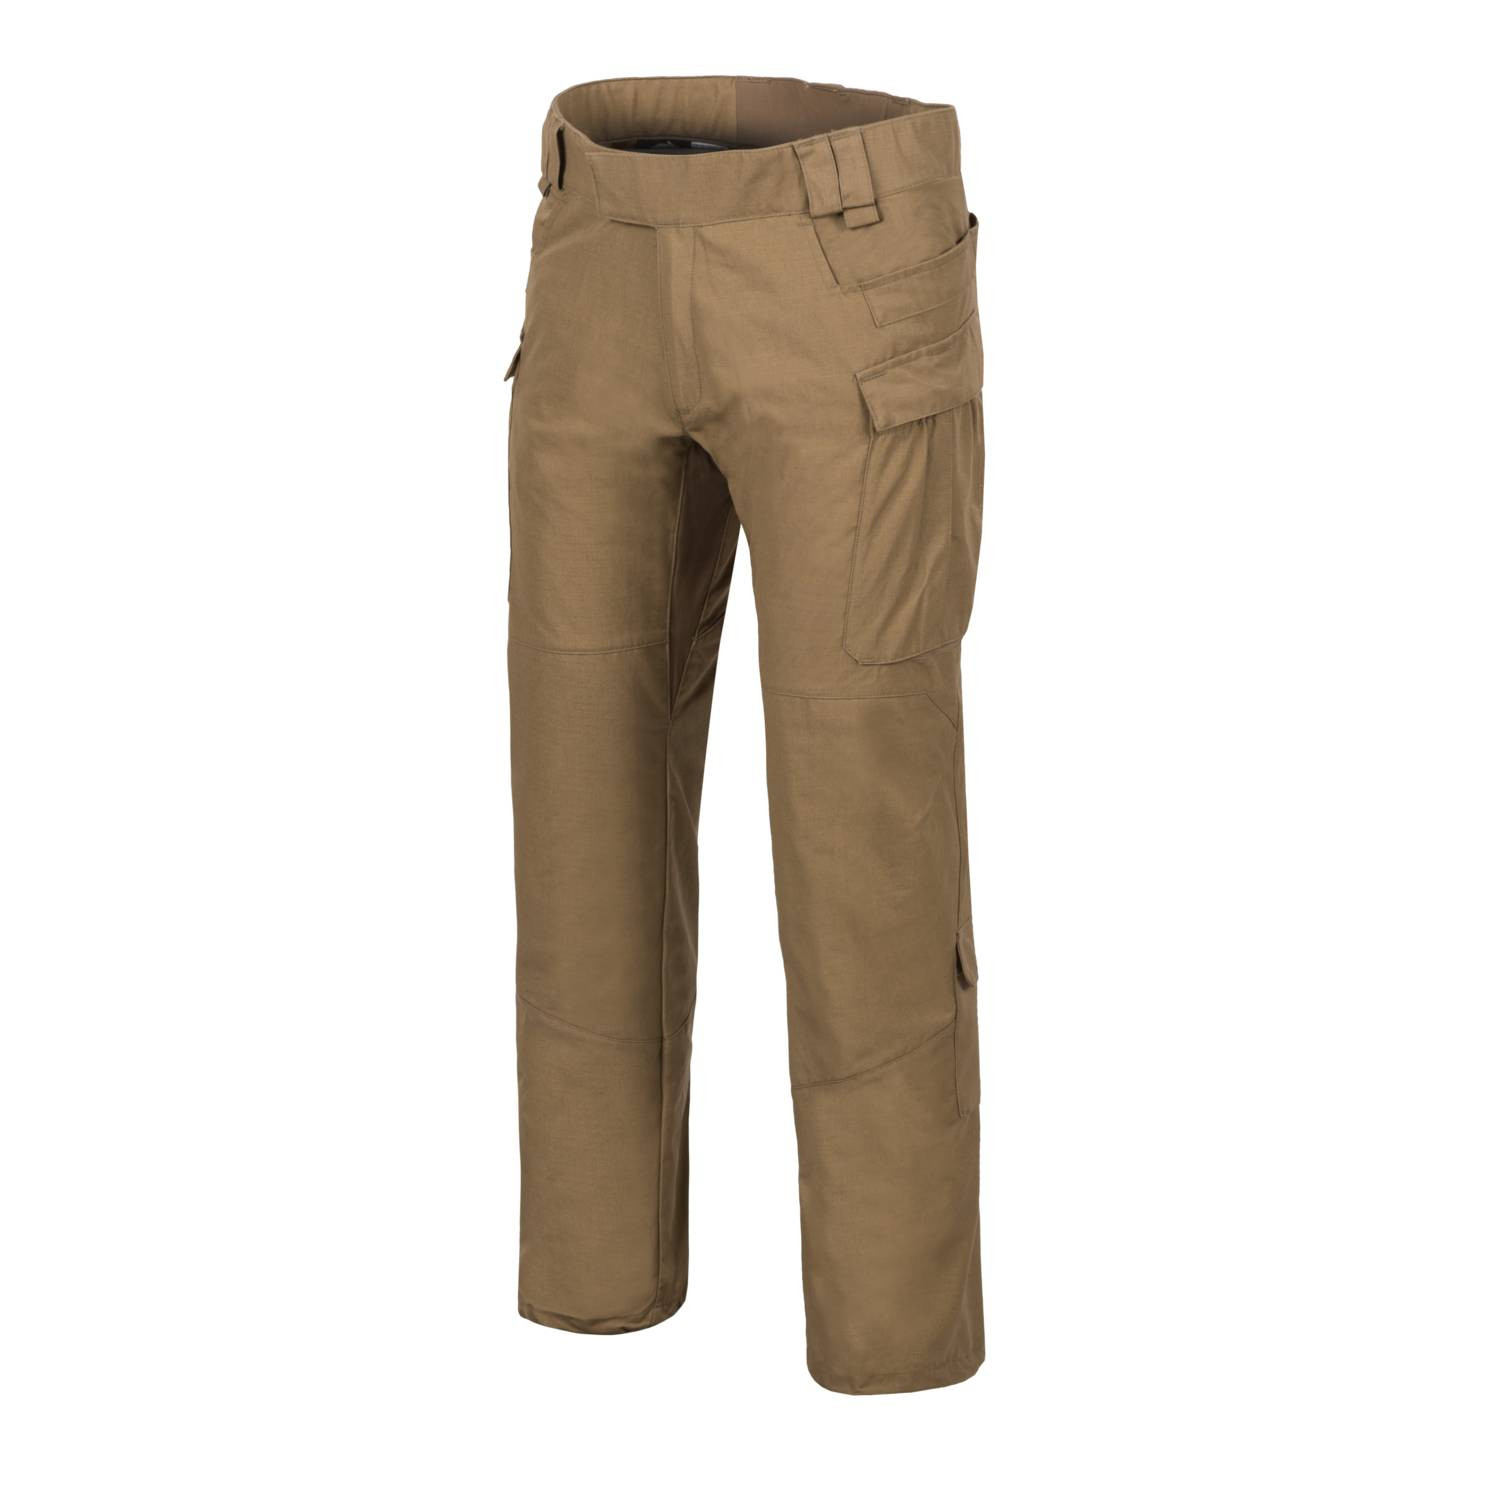 MBDU® Trousers - NyCo Ripstop Detail 1